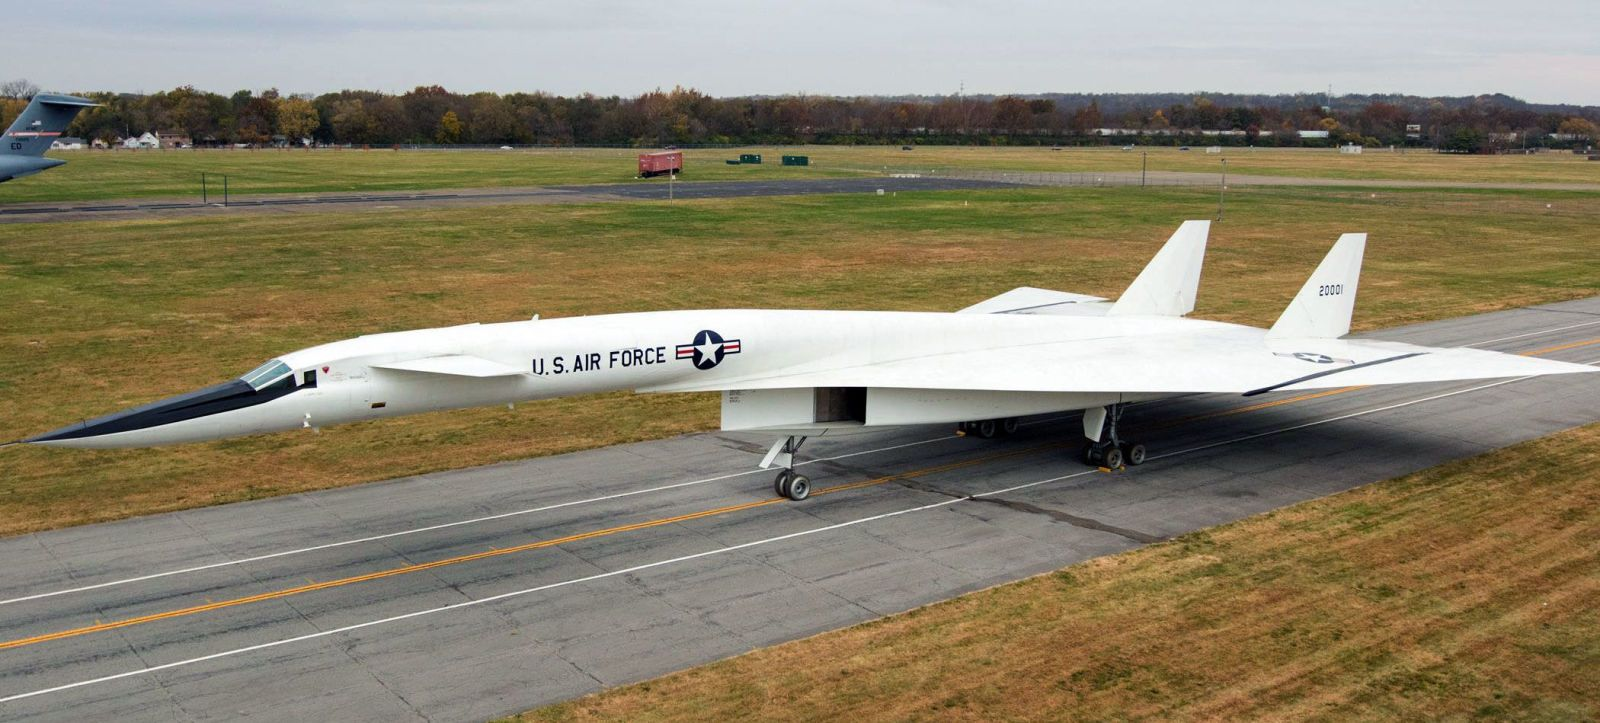 Rare Supersonic Bomber Rolls Out of the Hangar for the First Time in